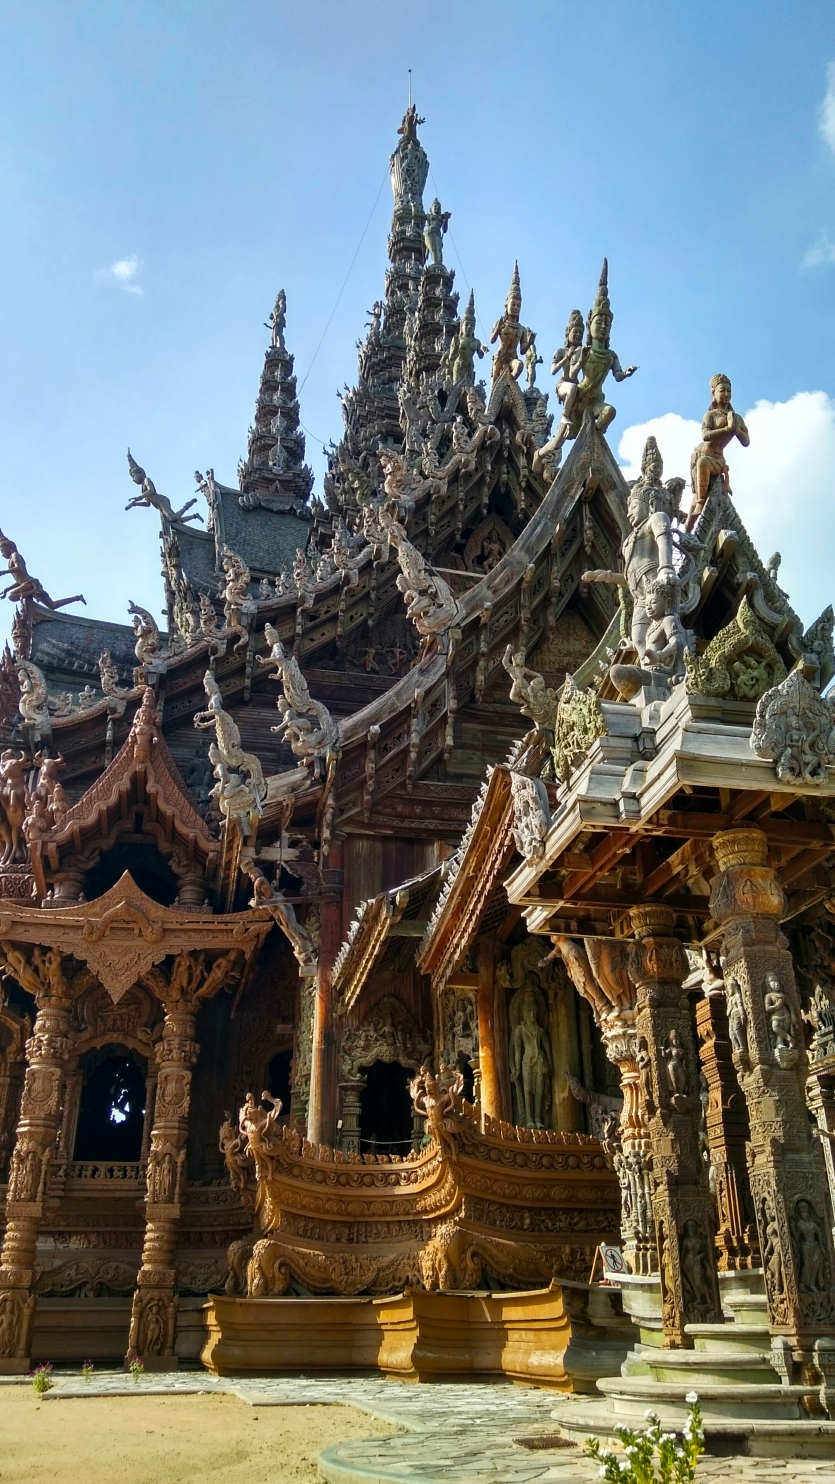 The Sanctuary of Truth, Pattaya, Thailand